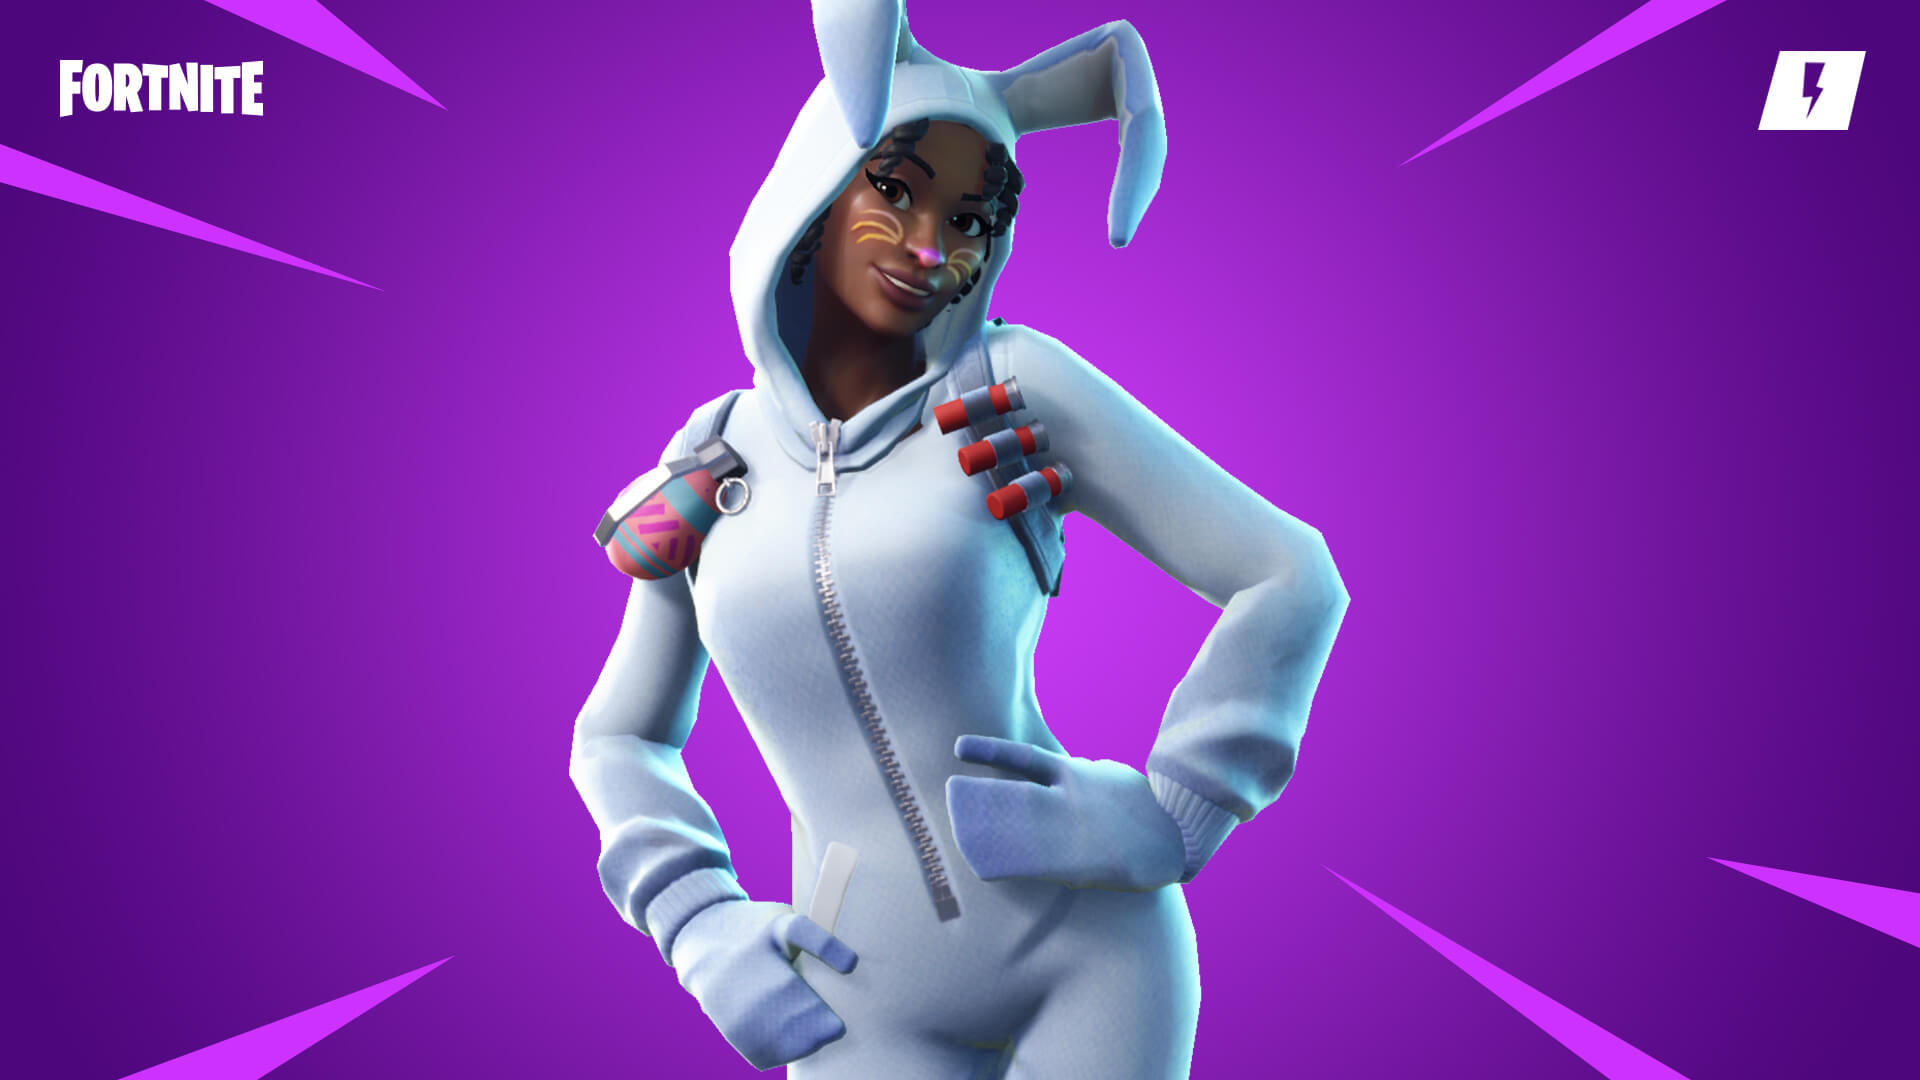 Fortnite Save The World Bunny Brawler Luna